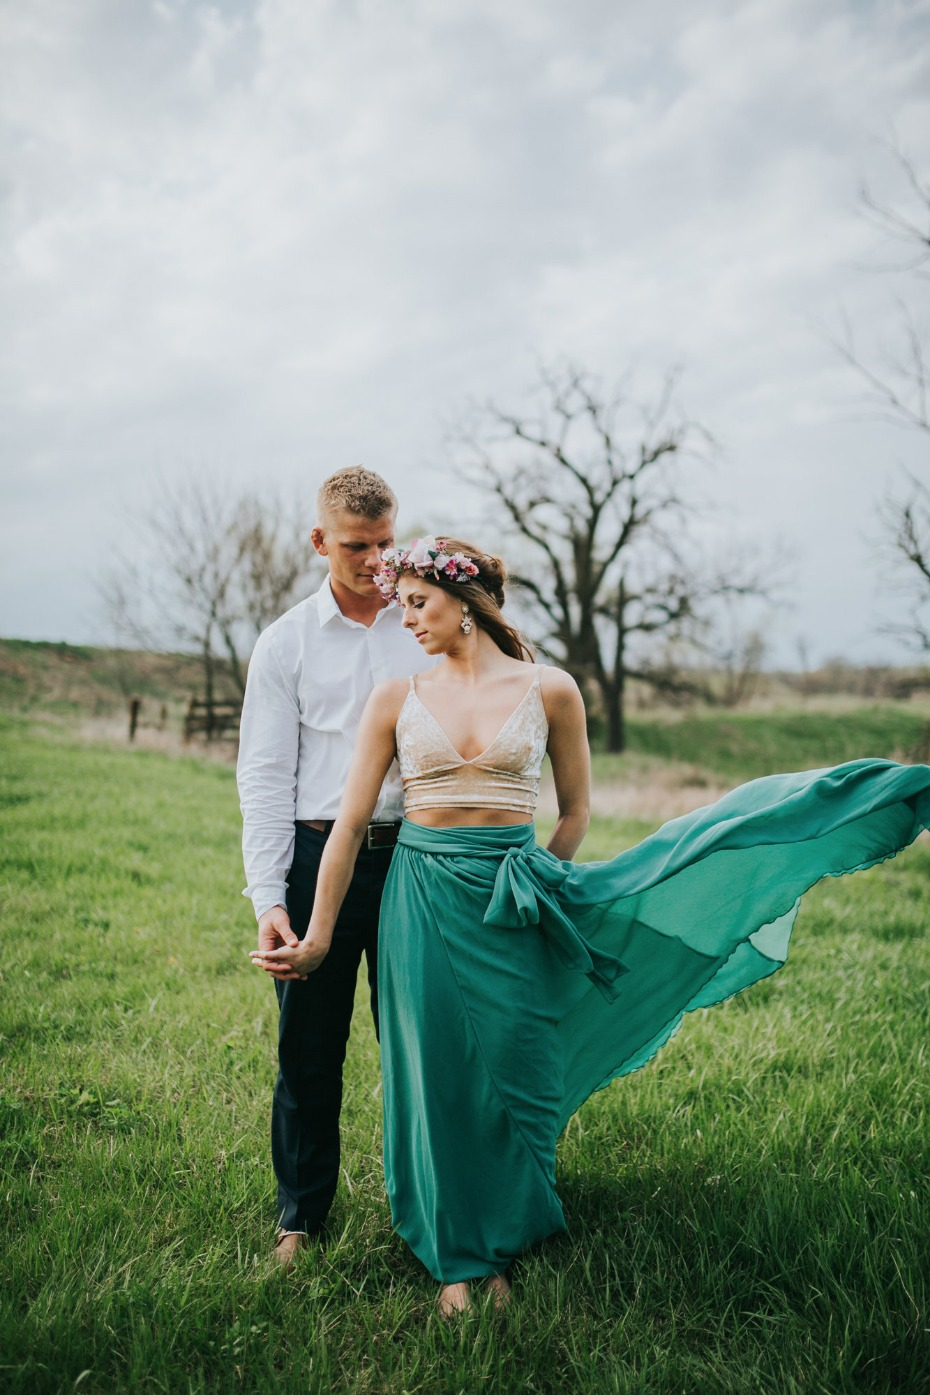 Green skirt blowing in the wind